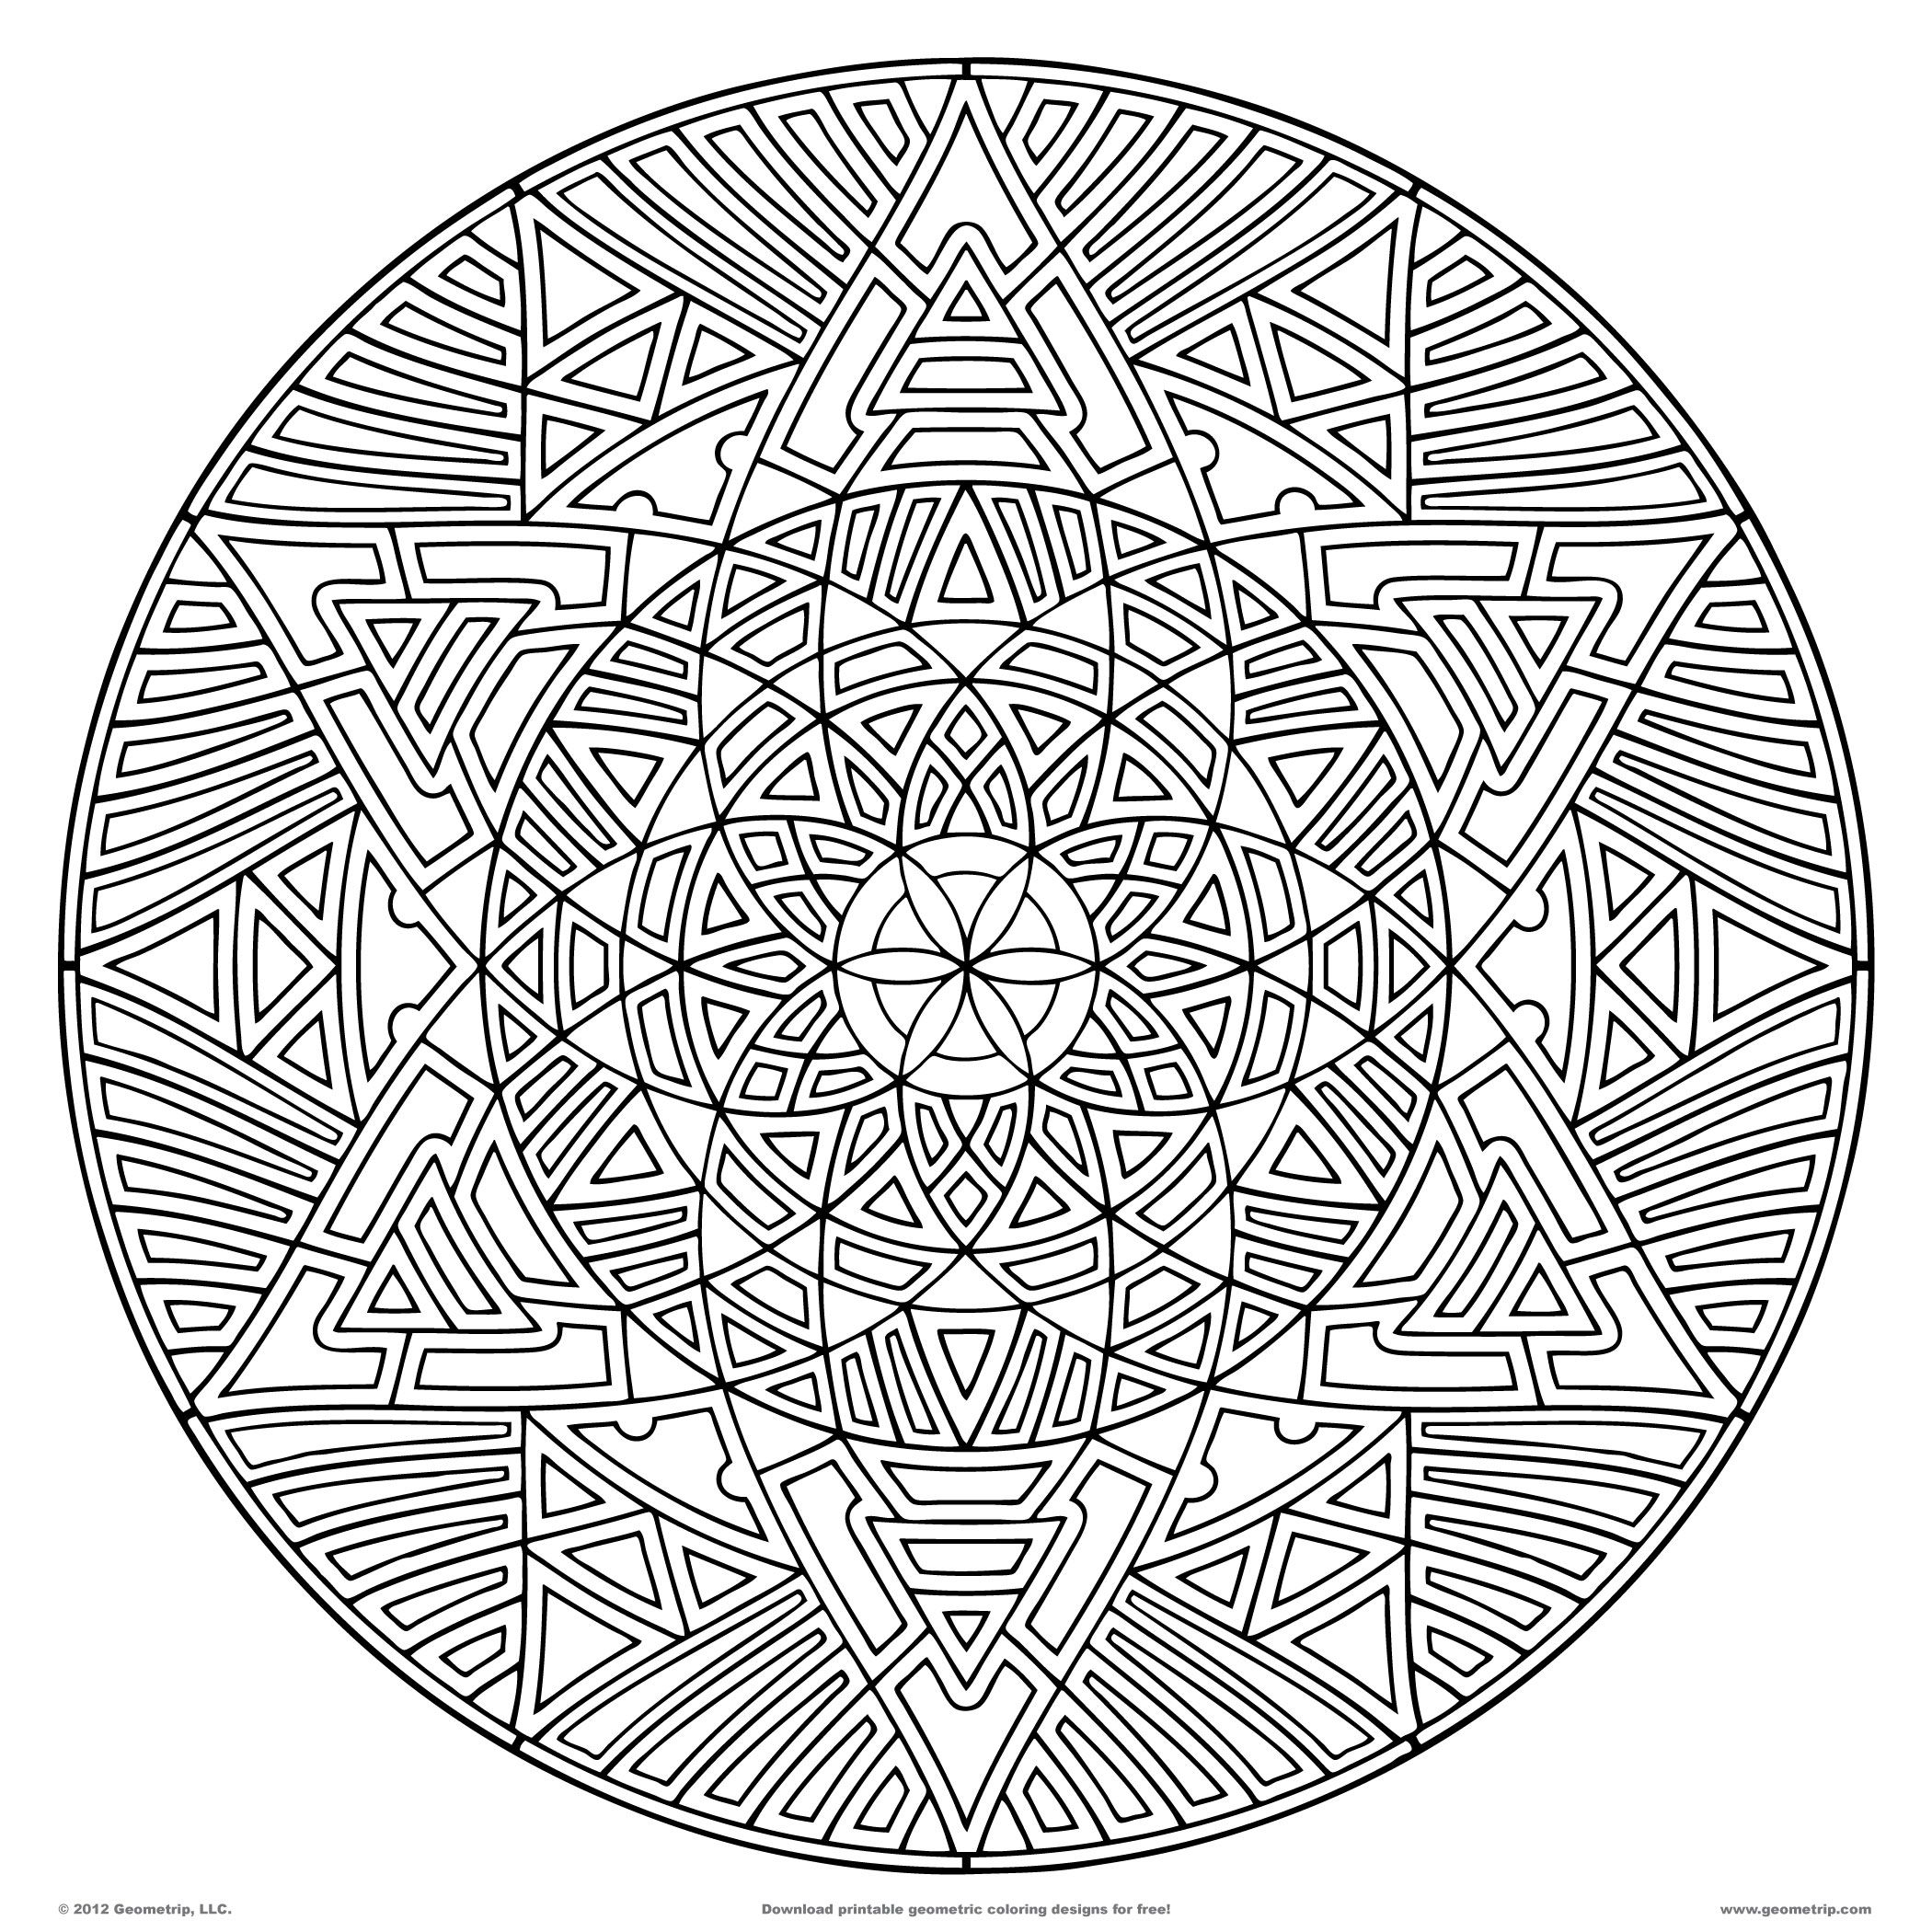 Free coloring pages kaleidoscope designs - Hard Coloring Pages Pdf Free Online Printable Coloring Pages Sheets For Kids Get The Latest Free Hard Coloring Pages Pdf Images Favorite Coloring Pages